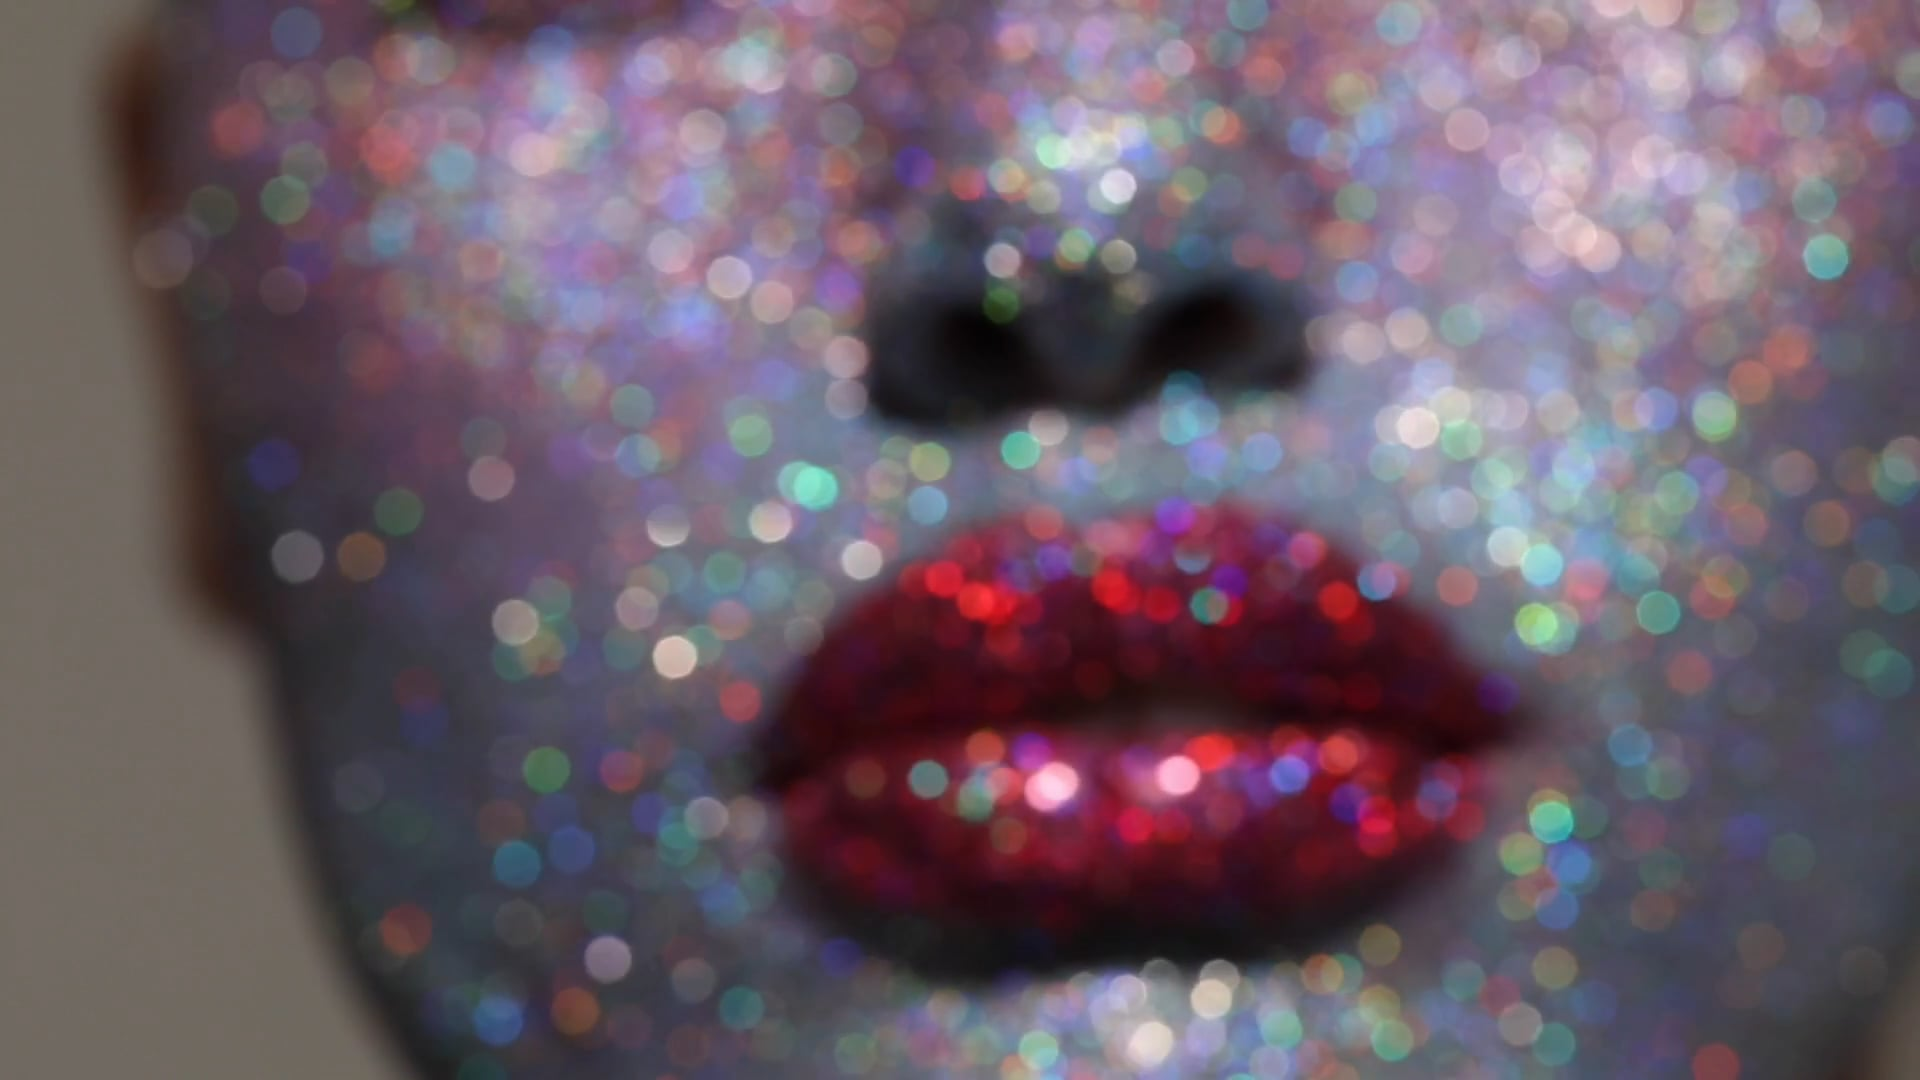 staz-lindes-full-glitter-face-makeup-video-beauty-fashion-jamie-nelson